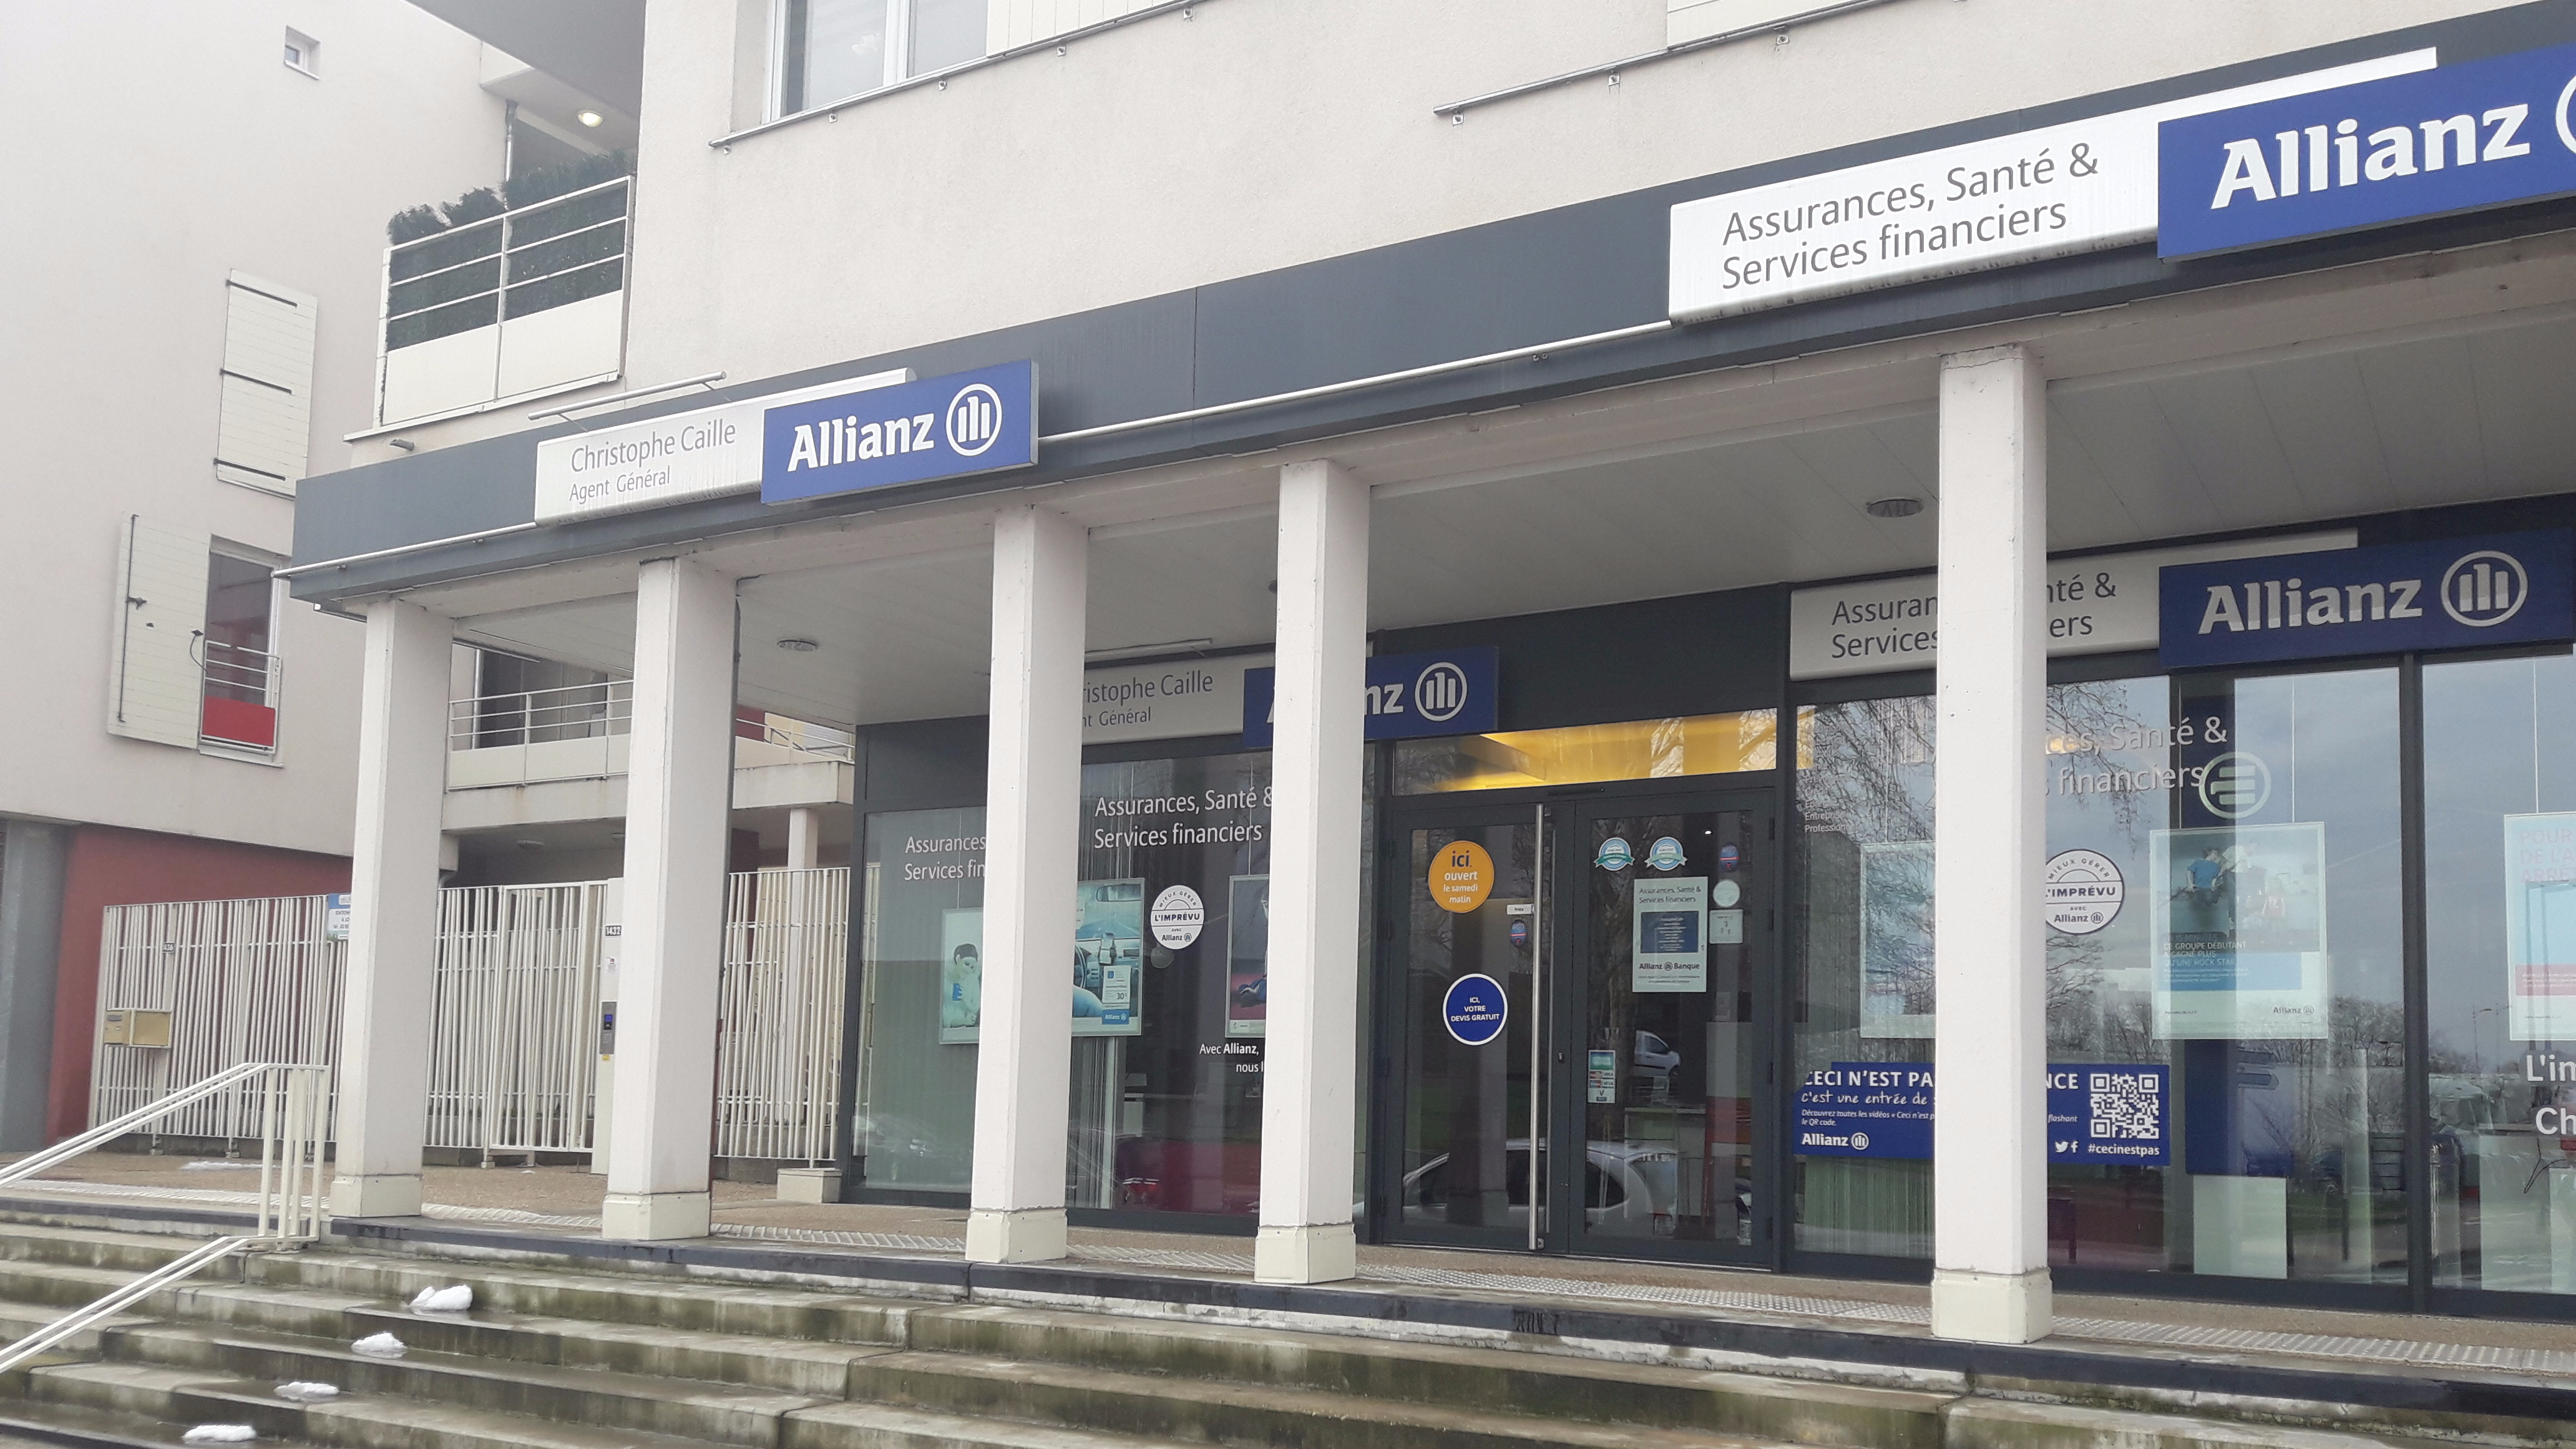 Allianz Macon st antoine - Christophe CAILLE